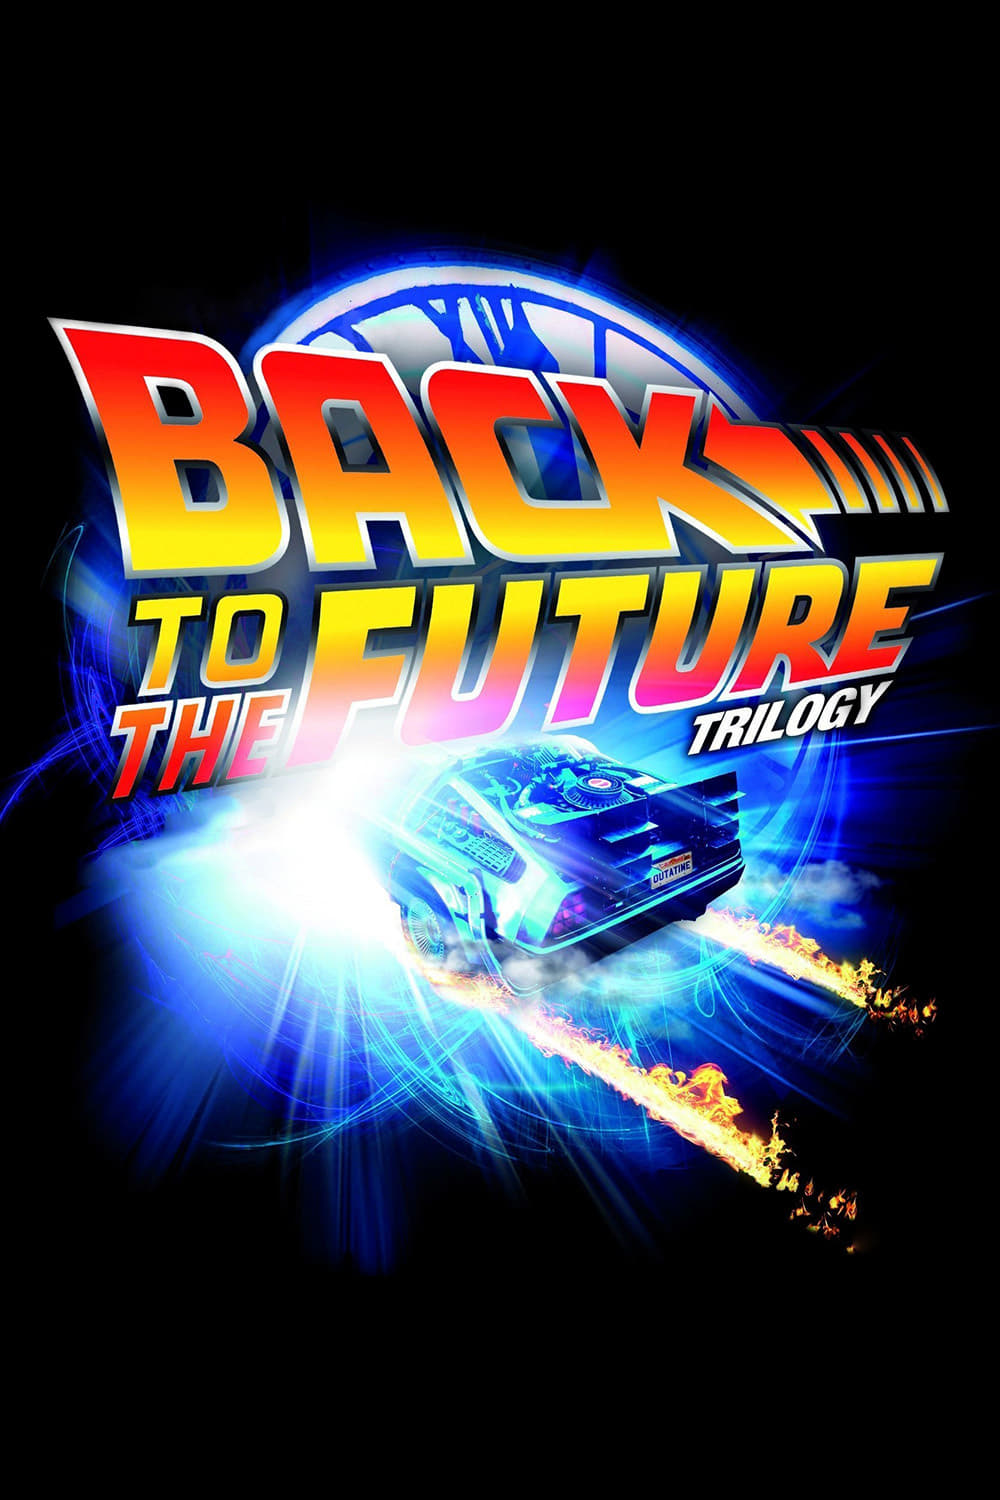 all movies from back to the future collection saga are on